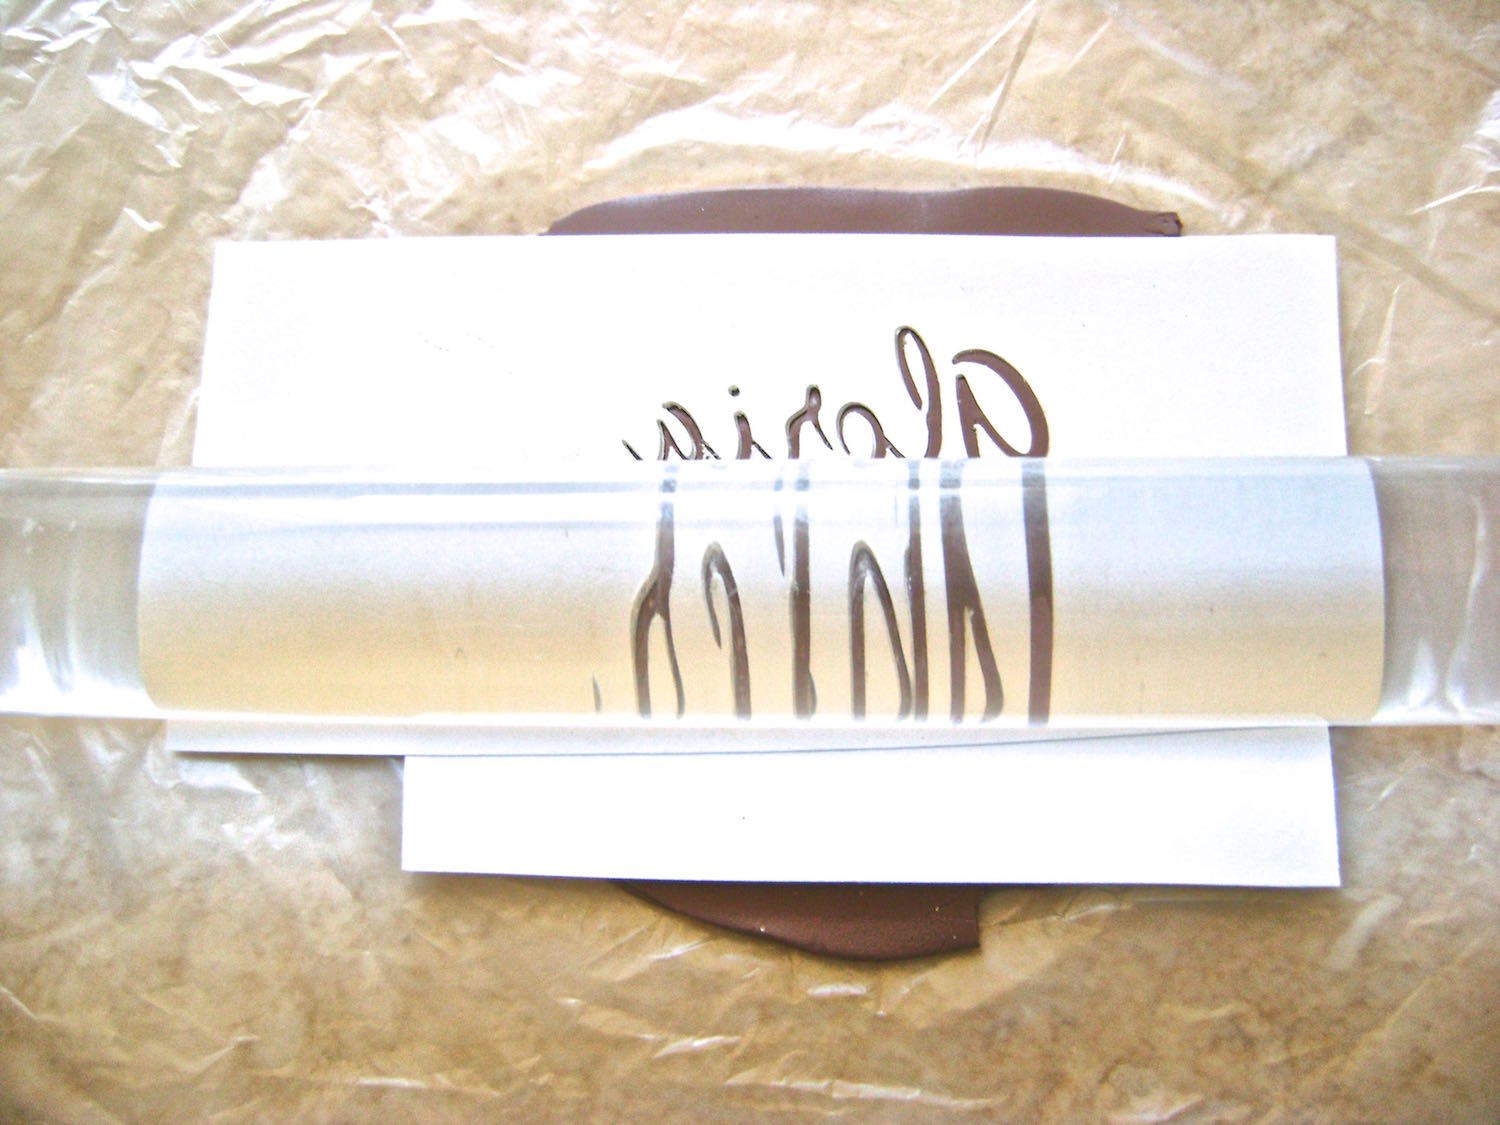 step 4 - Place the card stock onto the clay with the unreadable side facing up.  Either run them together through the conditioning machine on the widest setting, or roll over the signature with an acrylic roller until the clay has risen up to the top layer of the card stock.  Carefully peel the card stock away from the clay.